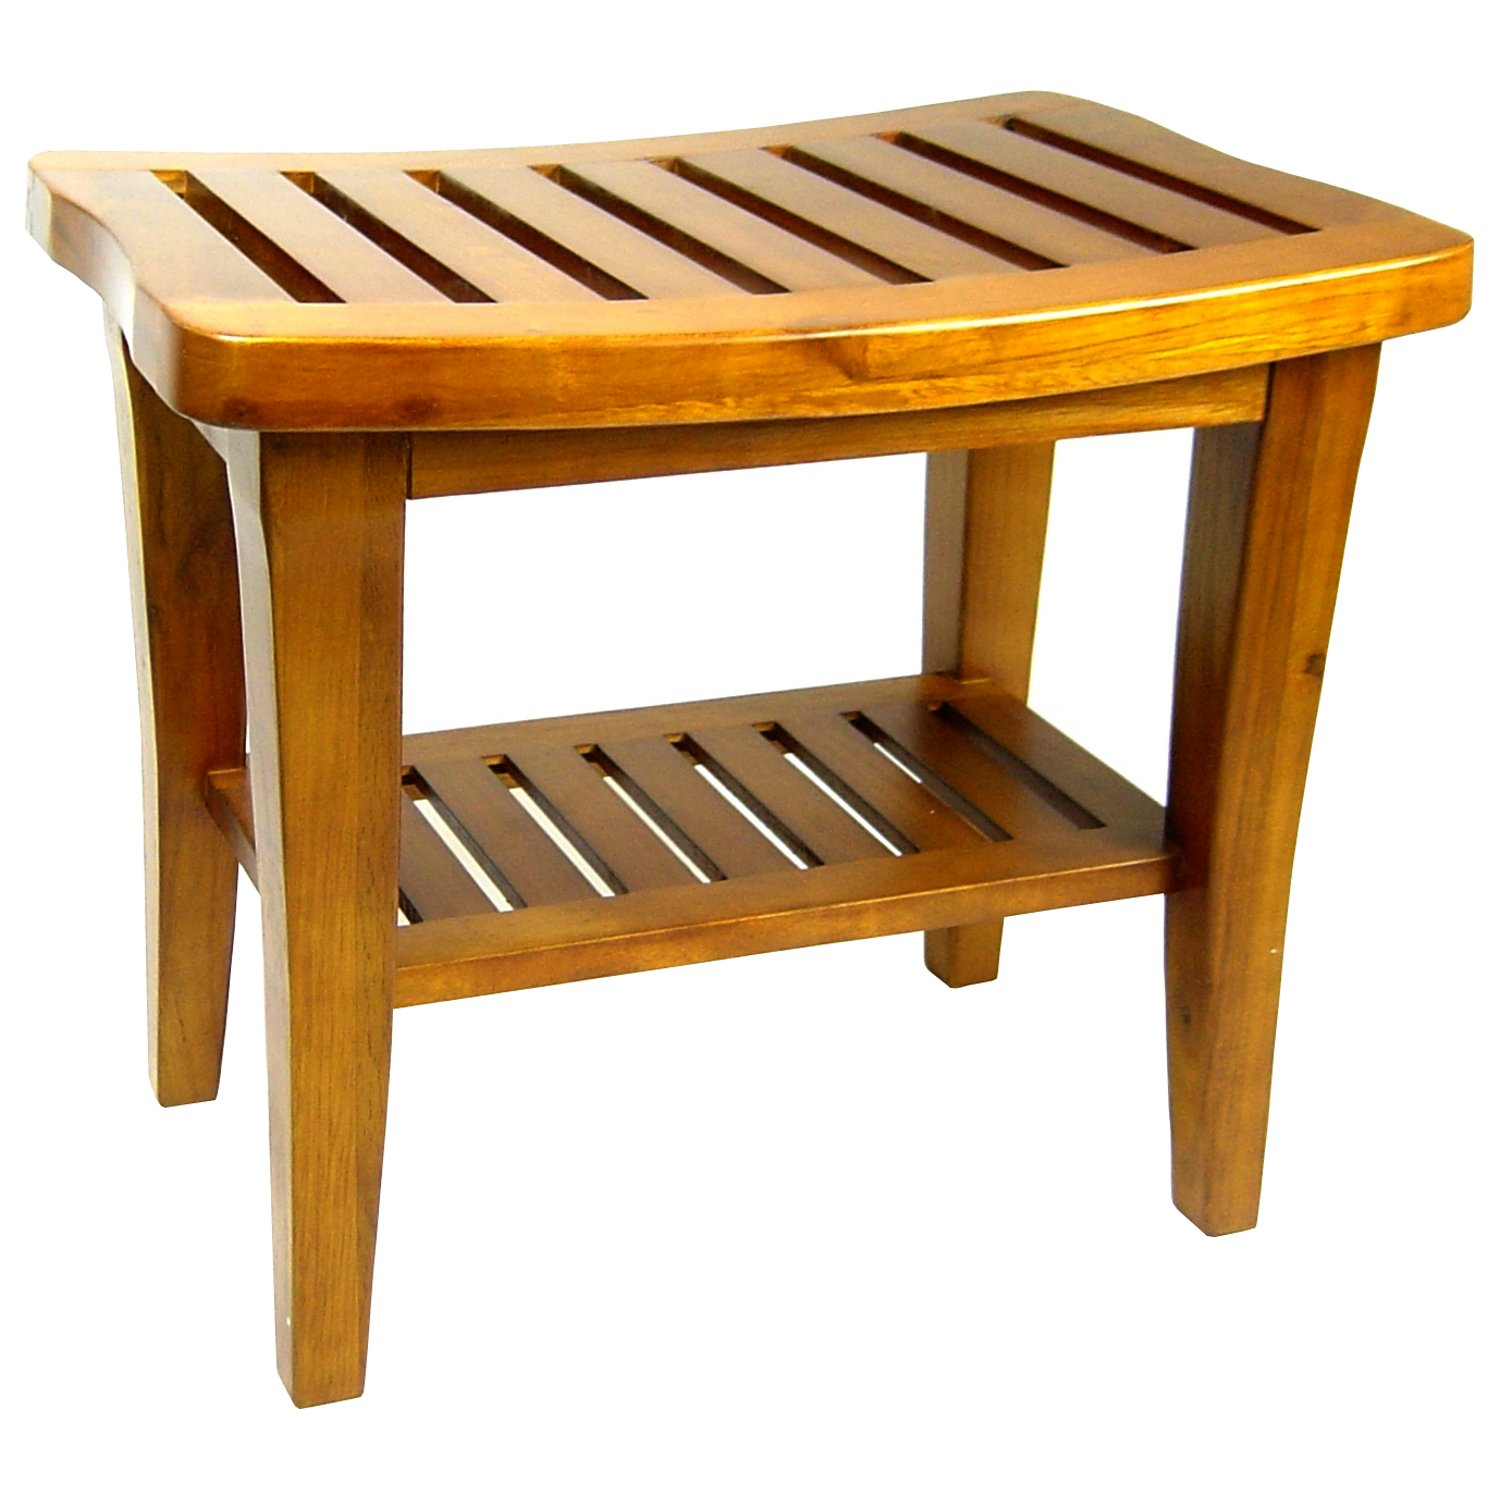 Amazon.com: Benches - Patio Seating: Patio, Lawn \u0026 Garden